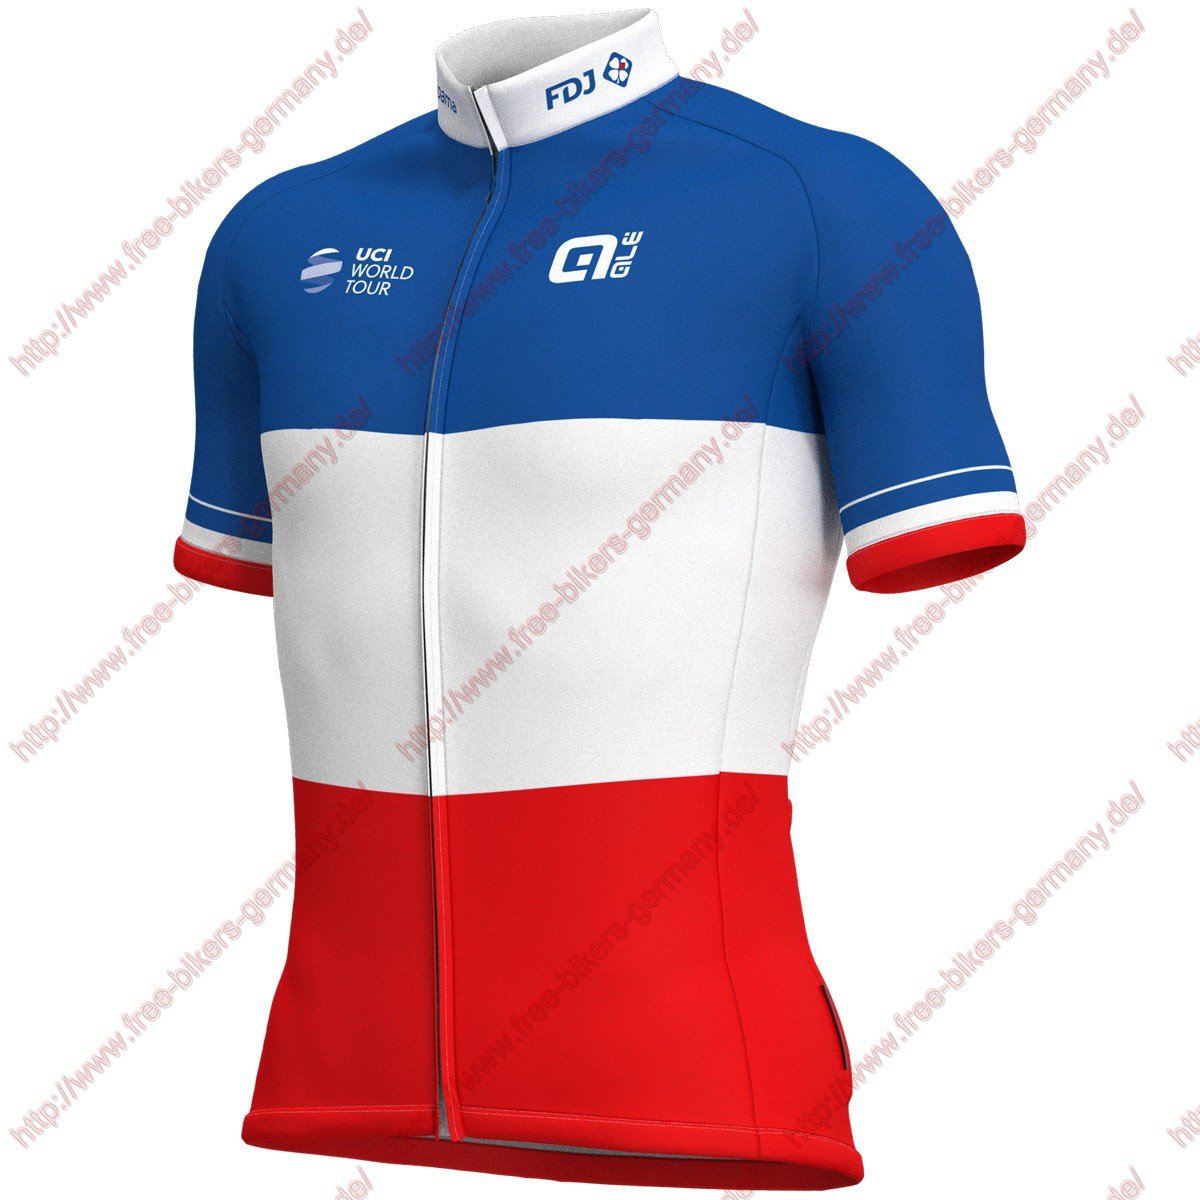 Radsport Groupama Fdj French Champion 2018 Trikot Kurzarm